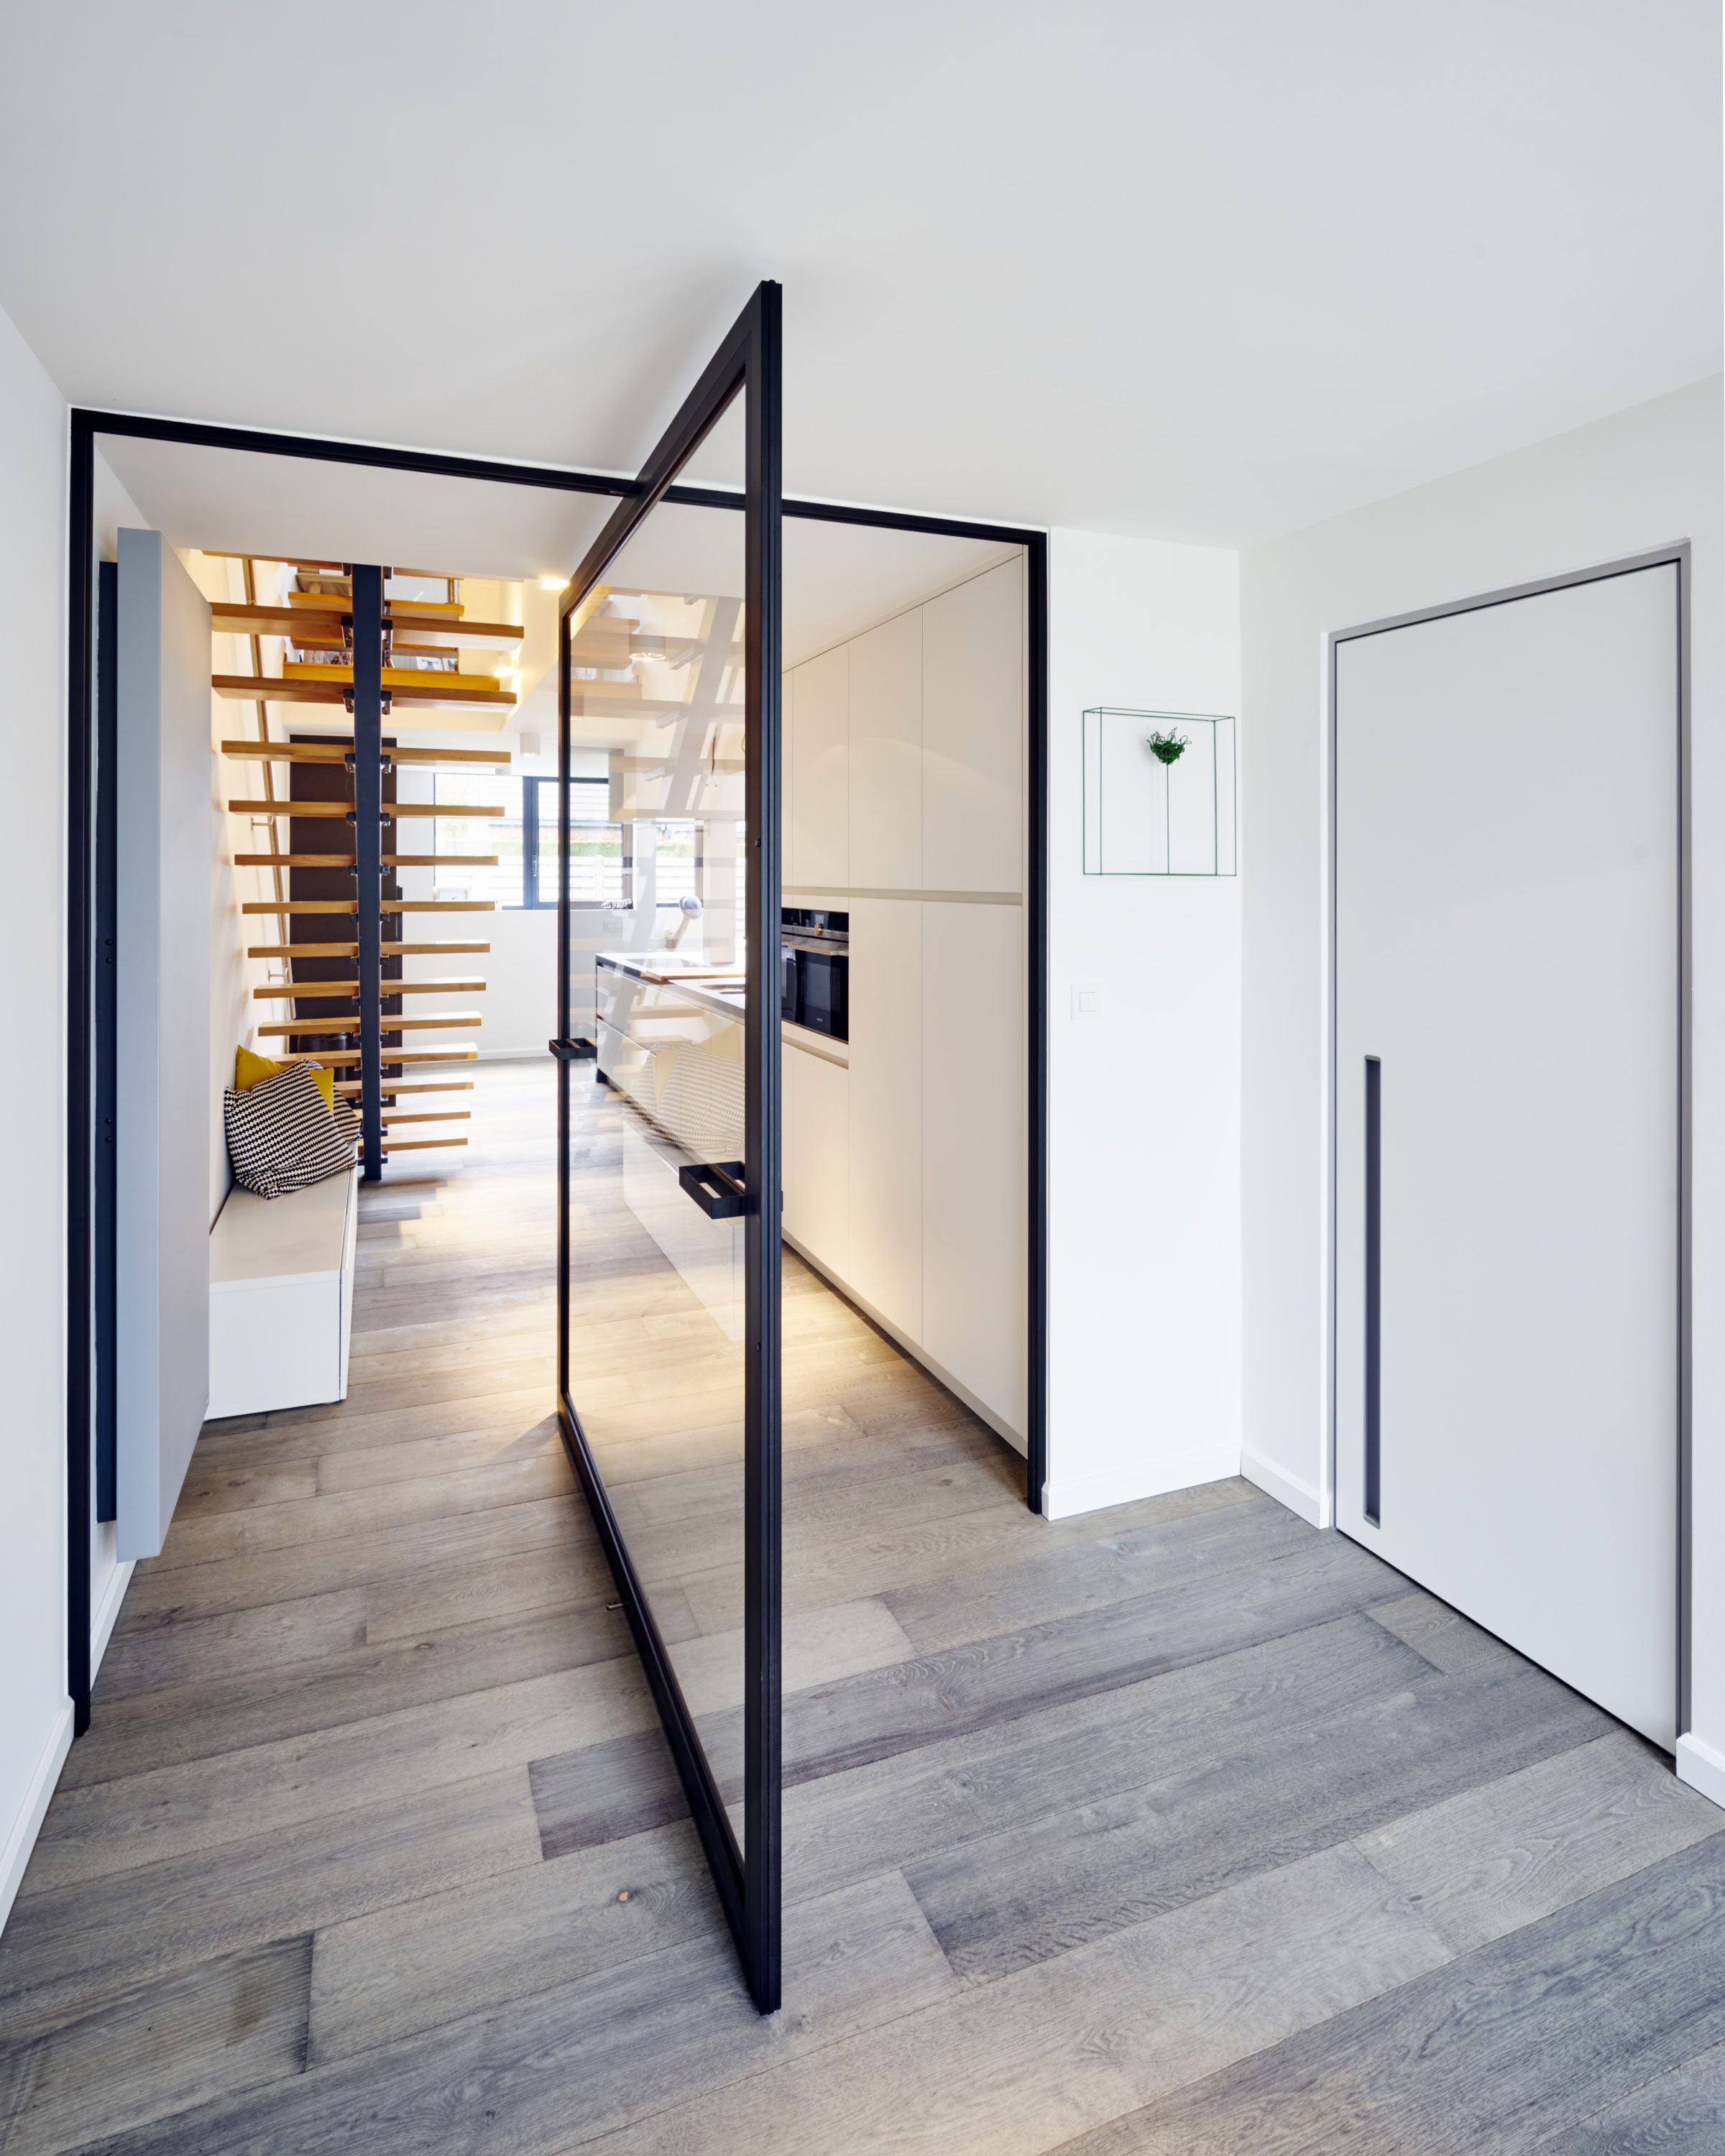 Product interior operable walls - Interior design jobs without a degree ...